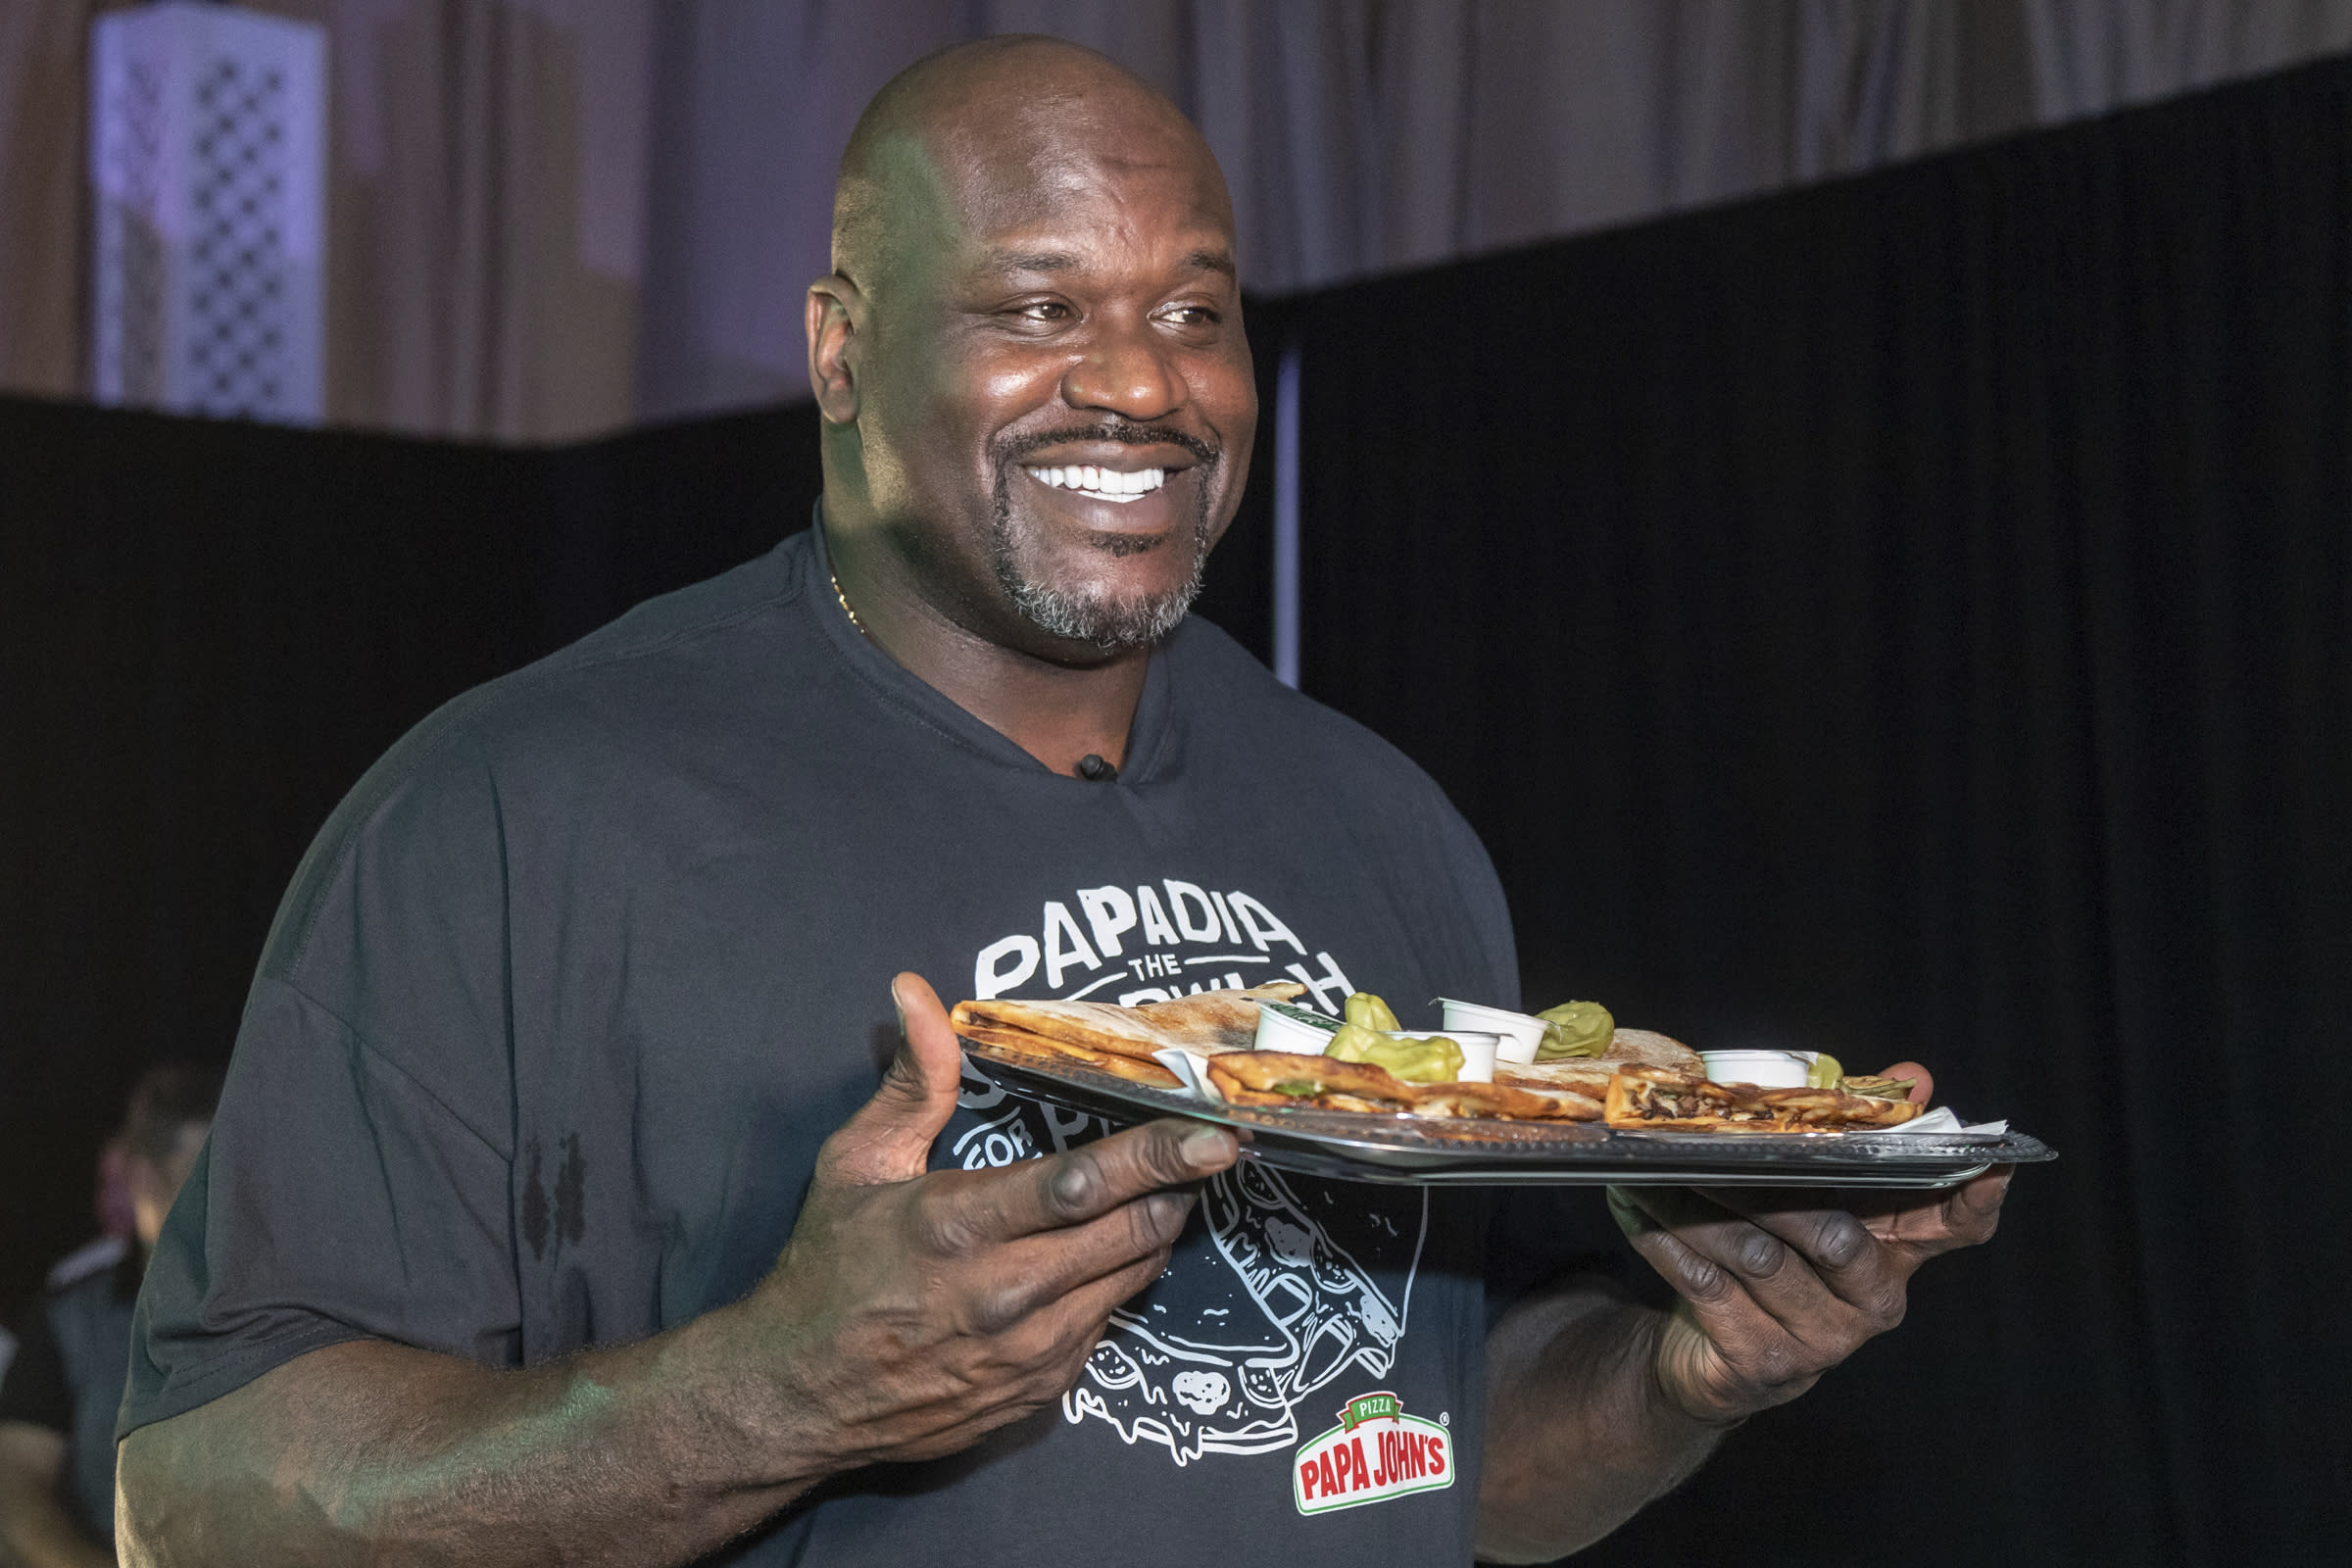 Shaq has boosted Papa John's advertisement engagement by more than 30%